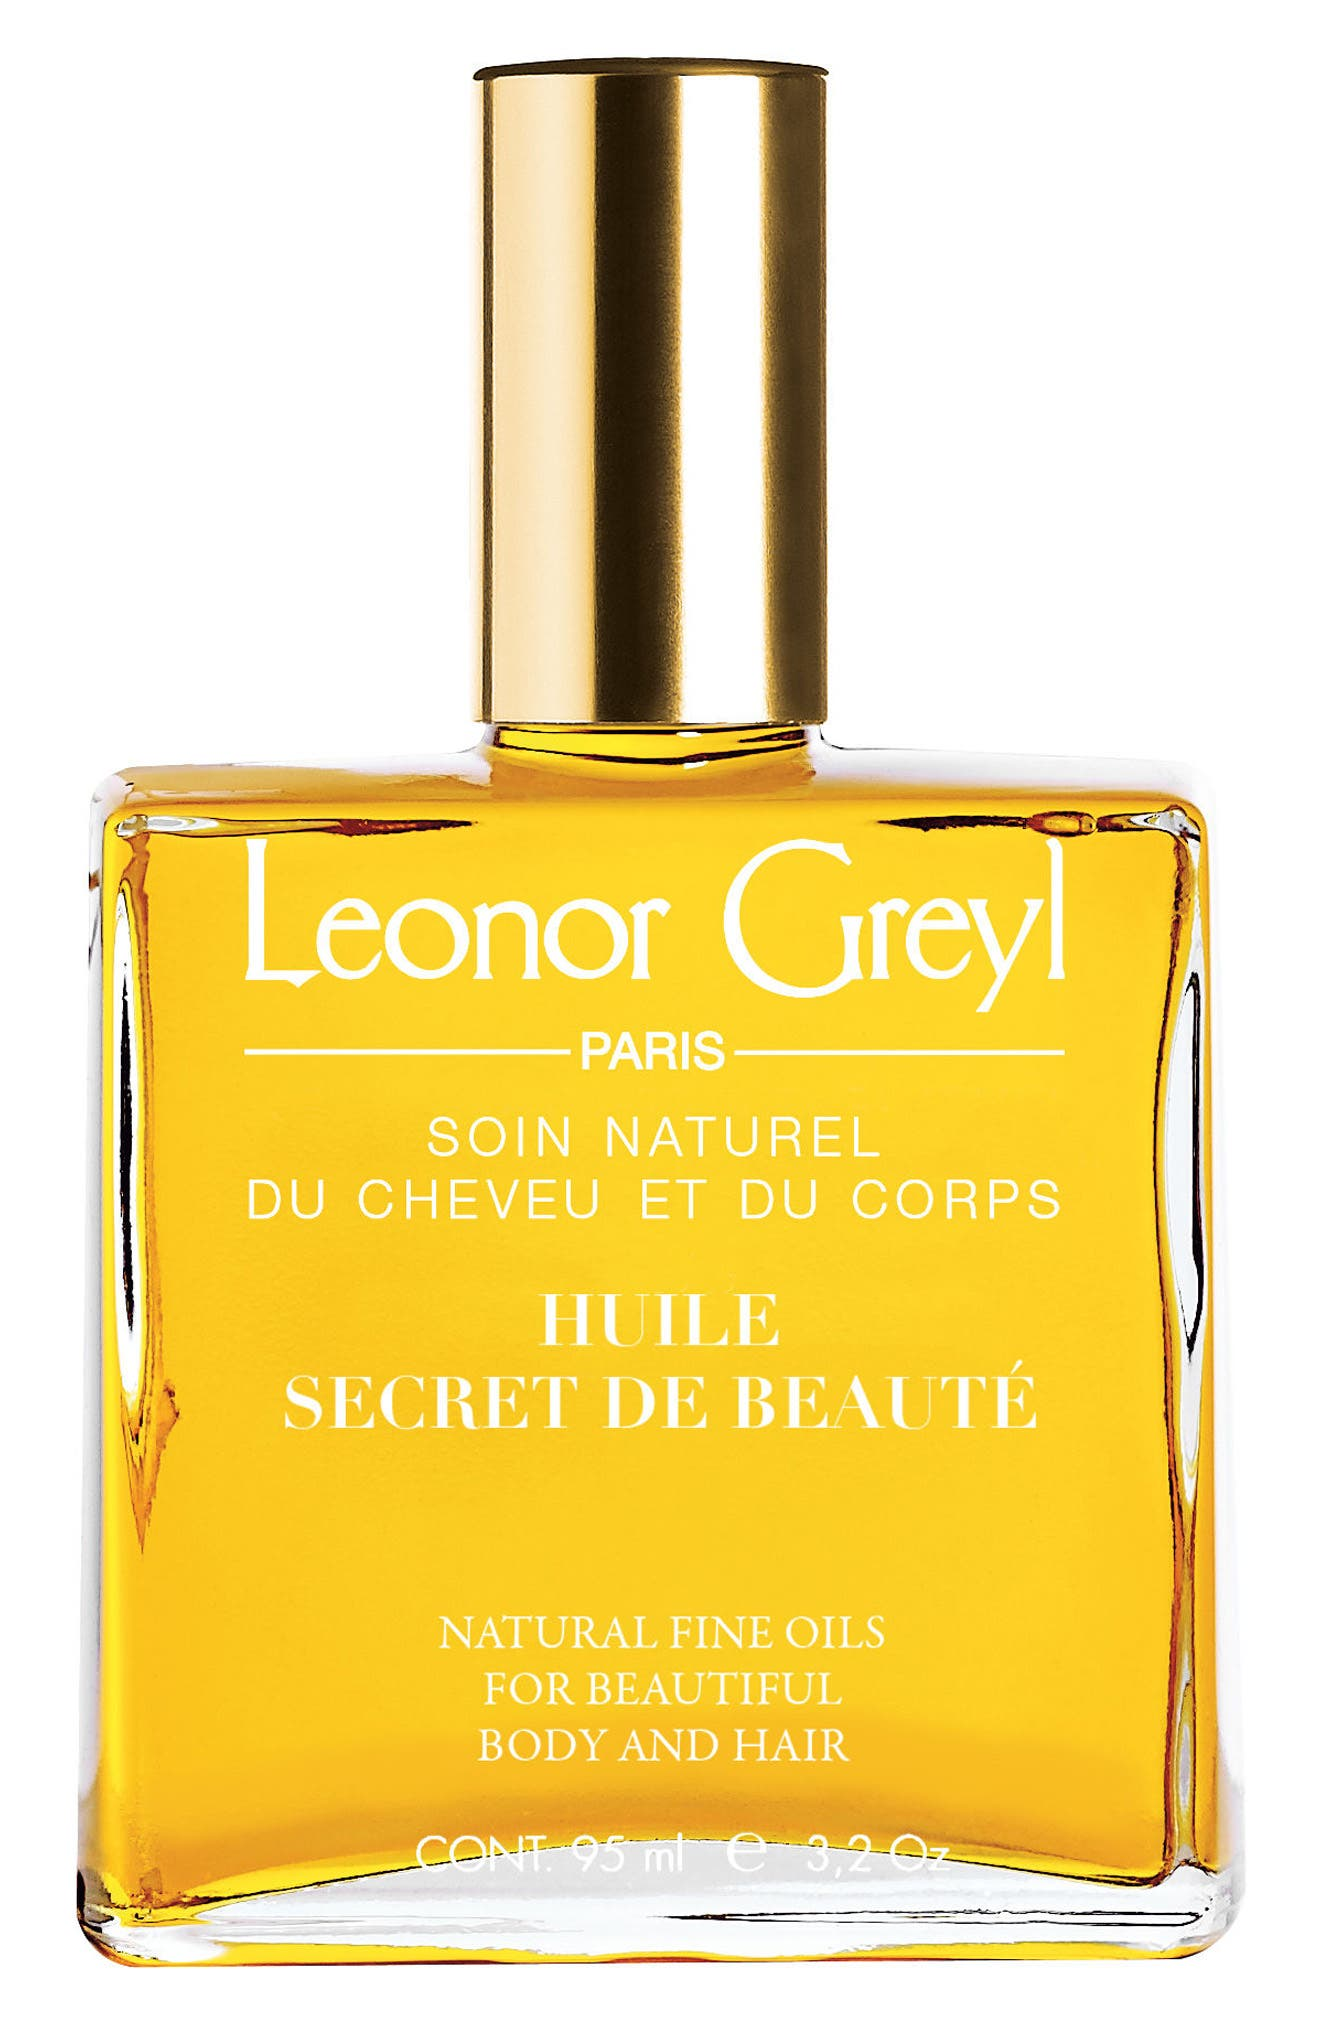 Leonor Greyl PARIS 'Huile Secret de Beauté' Hair & Skin Oil